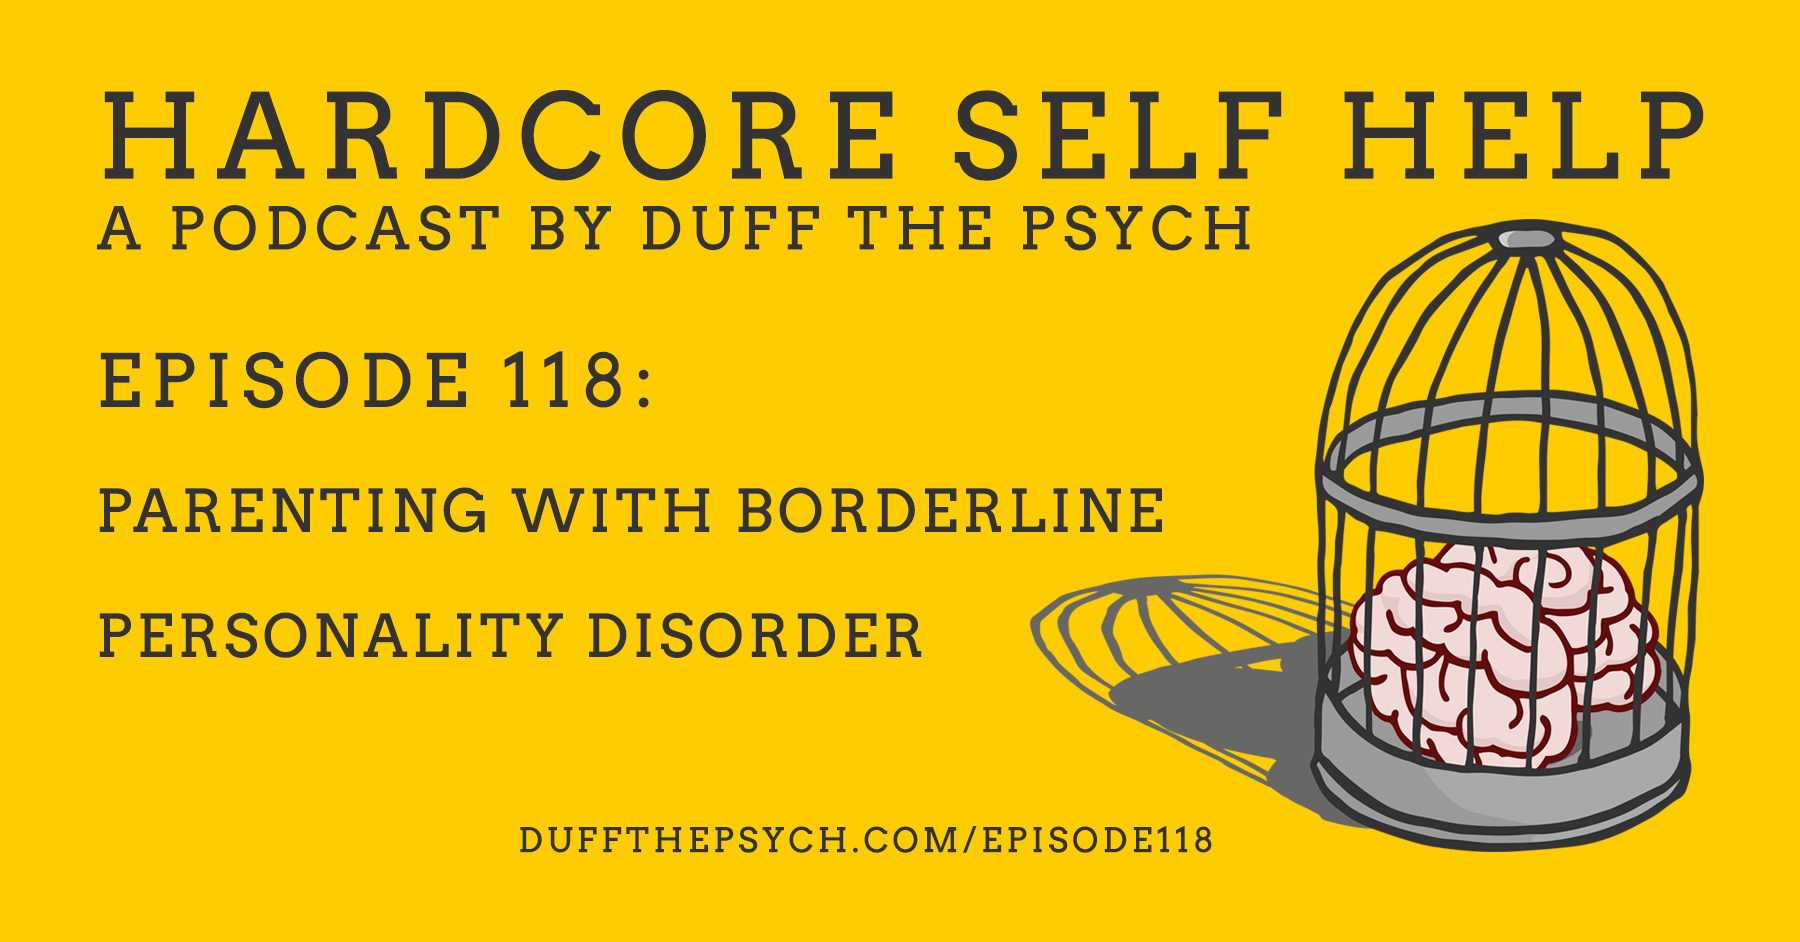 Episode 118: Parenting with Borderline Personality Disorder - Duff